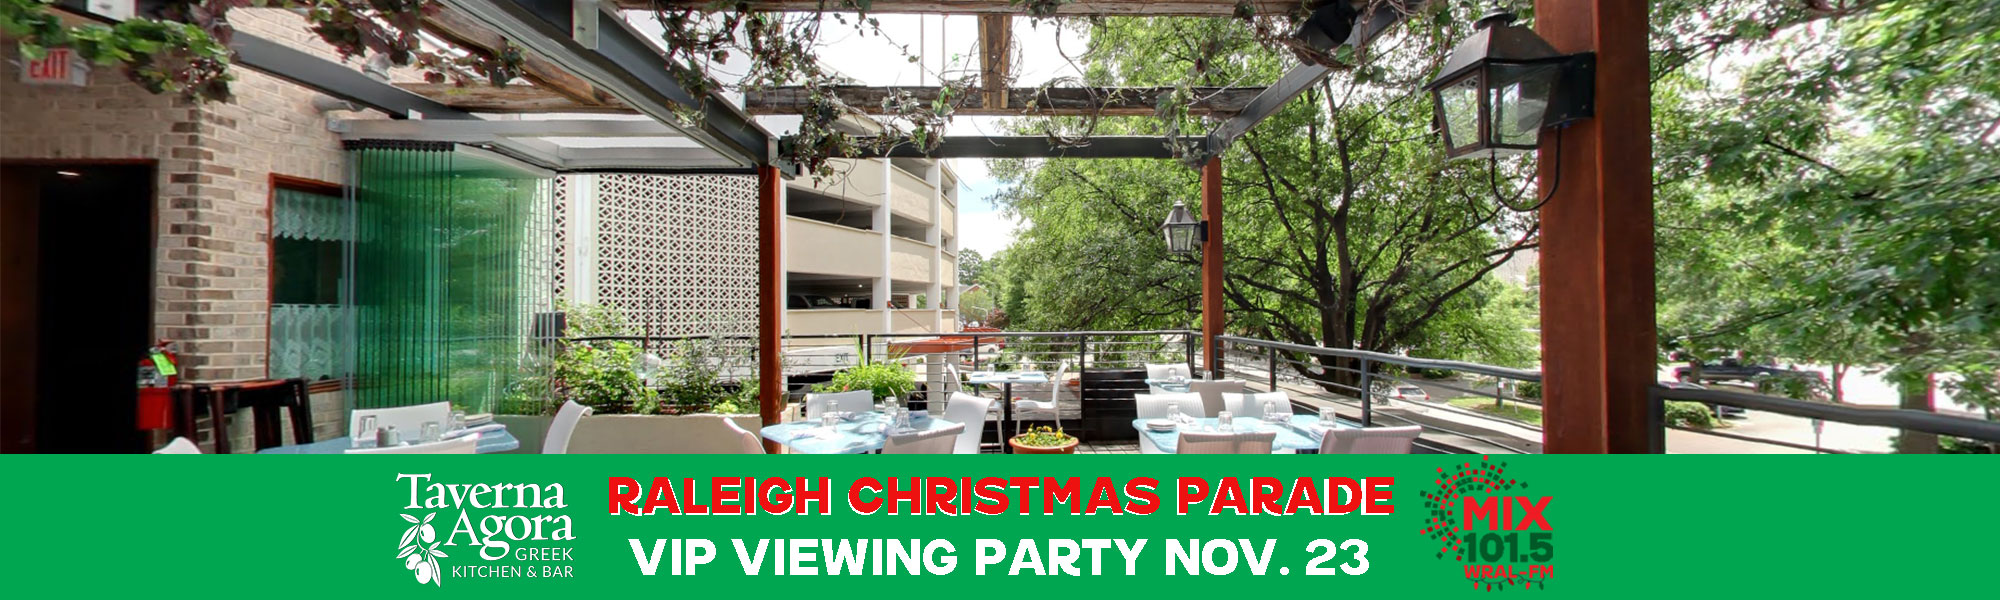 WRAL-FM_PARADE-VIEWING-PARTY_SLIDER_2019